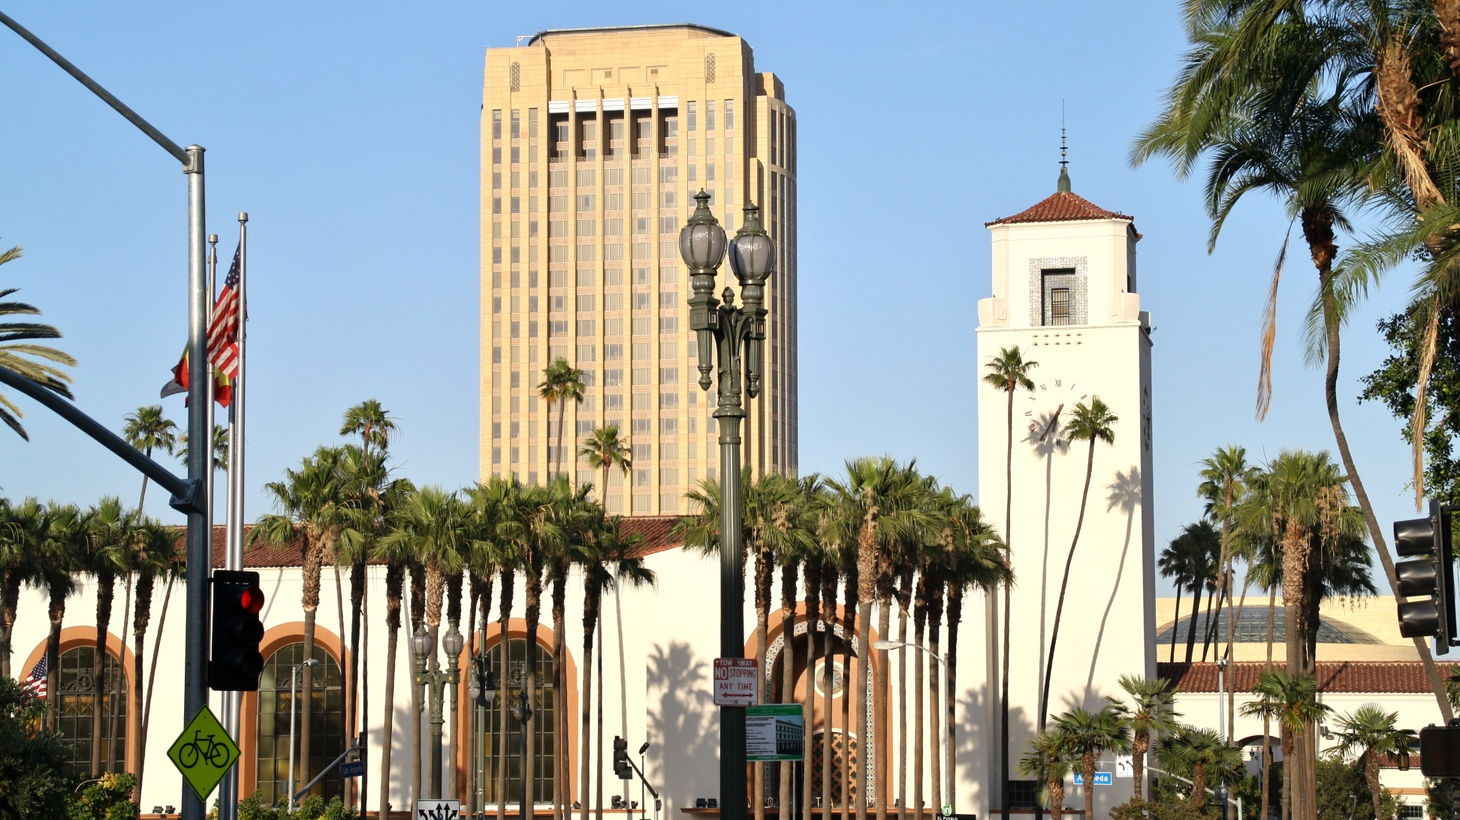 SB 50 would have forced LA to put more housing near public transit, such as Union Station.